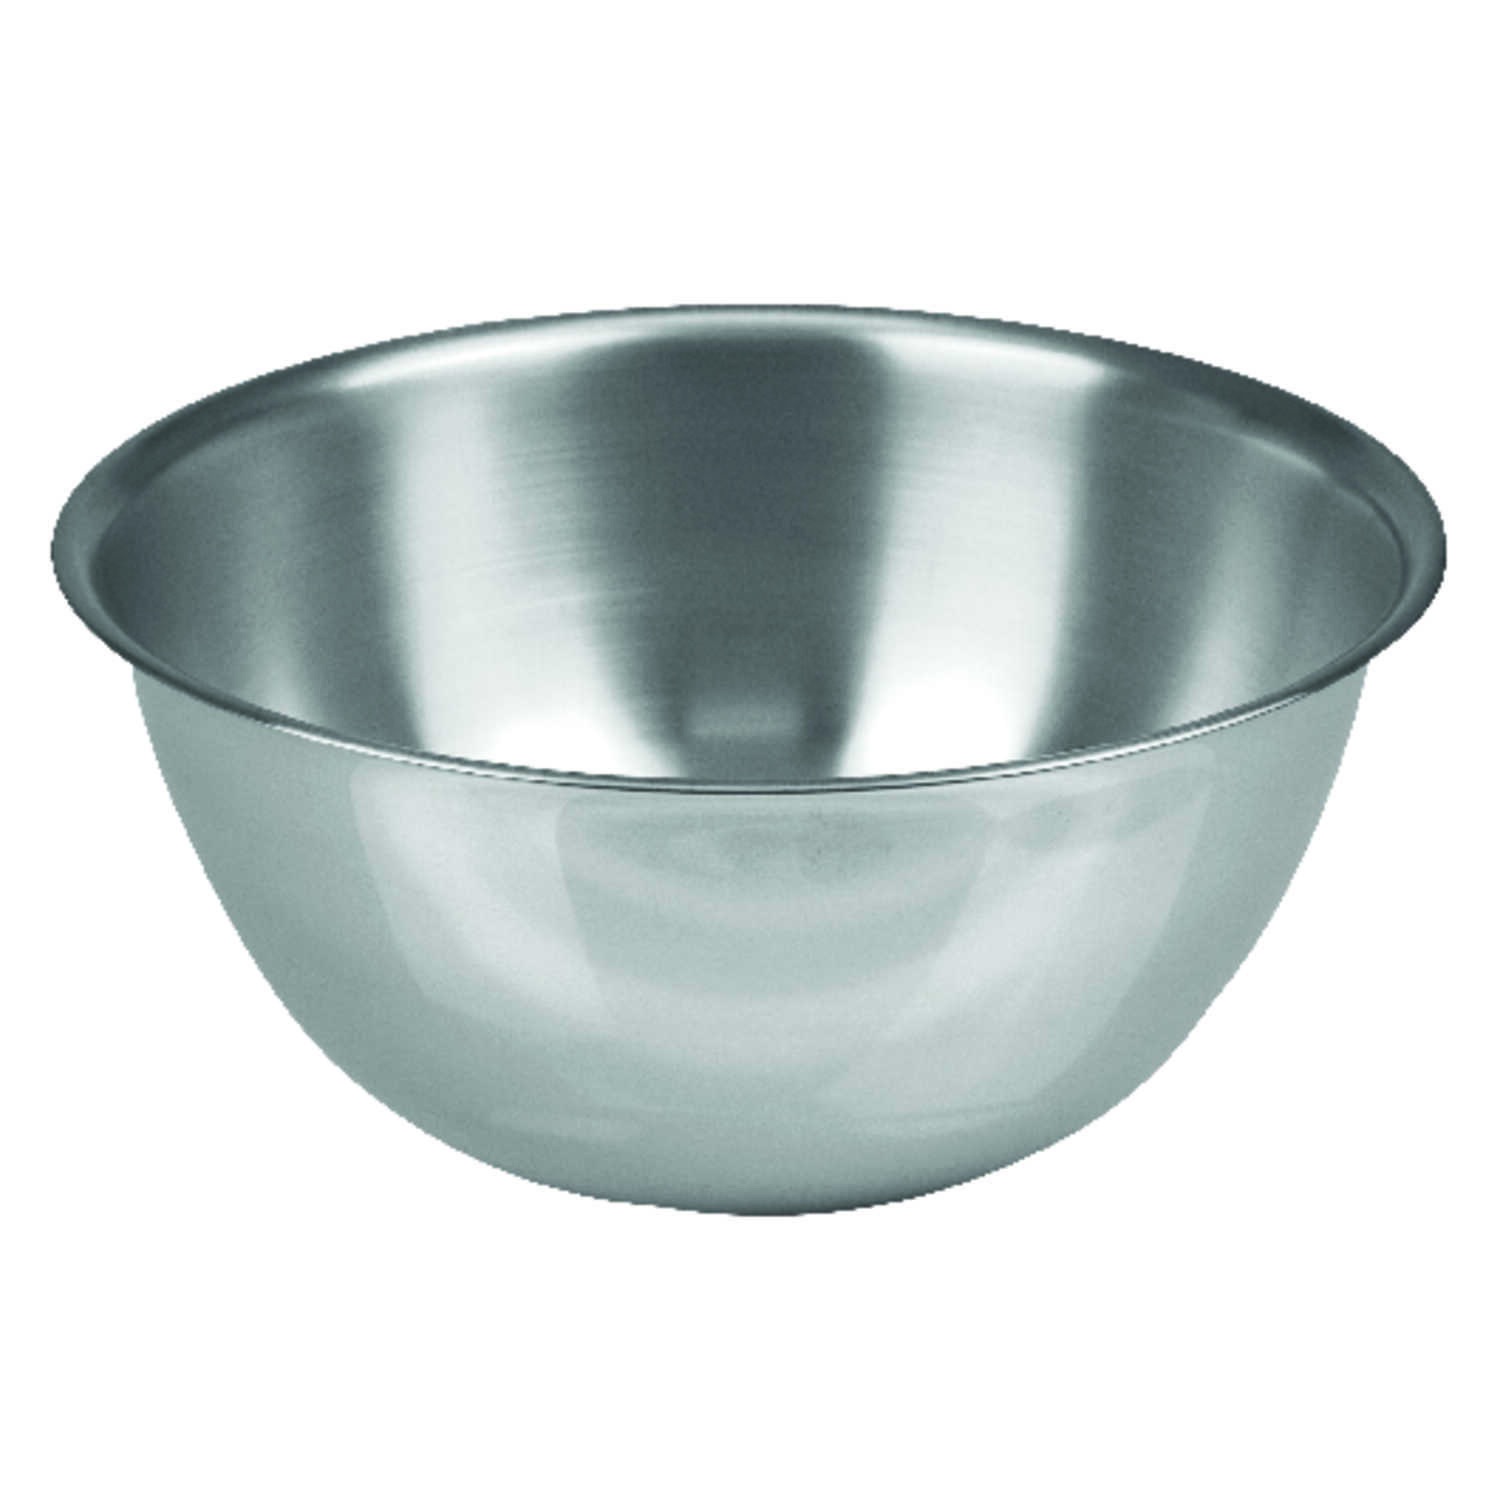 Fox Run  2.75  Stainless Steel  Black  Mixing Bowl  1 count